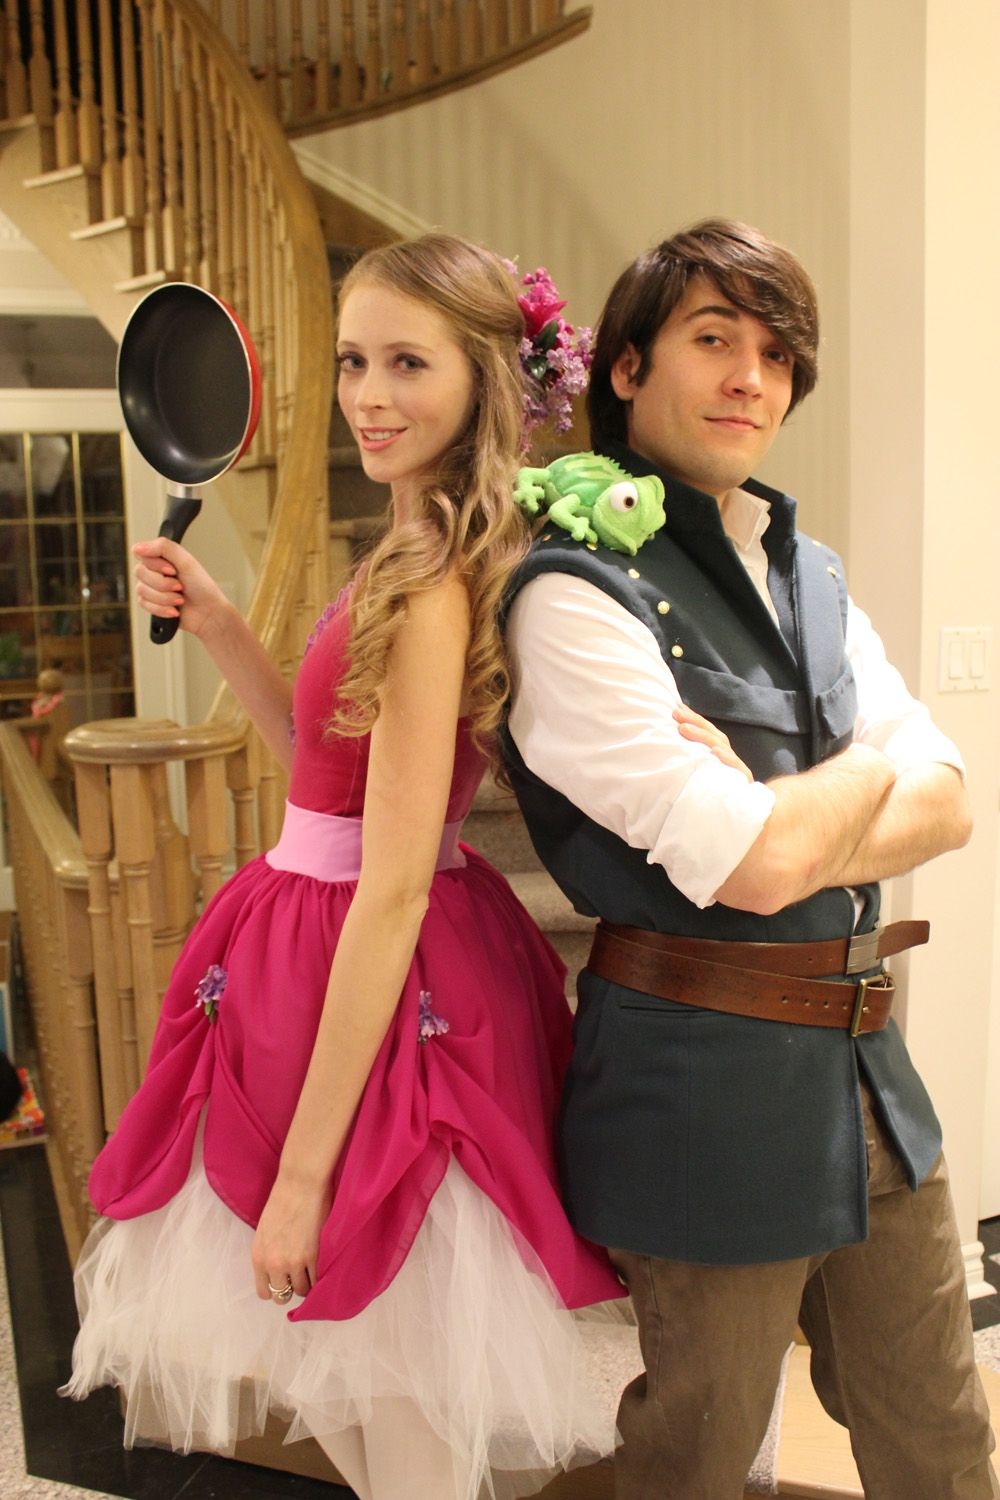 What Elaine Would Wear For Halloween If She Could Ever Find A Boy Who D Love Her Hum Best Halloween Costumes Ever Flynn Rider Costume Funny Halloween Costumes